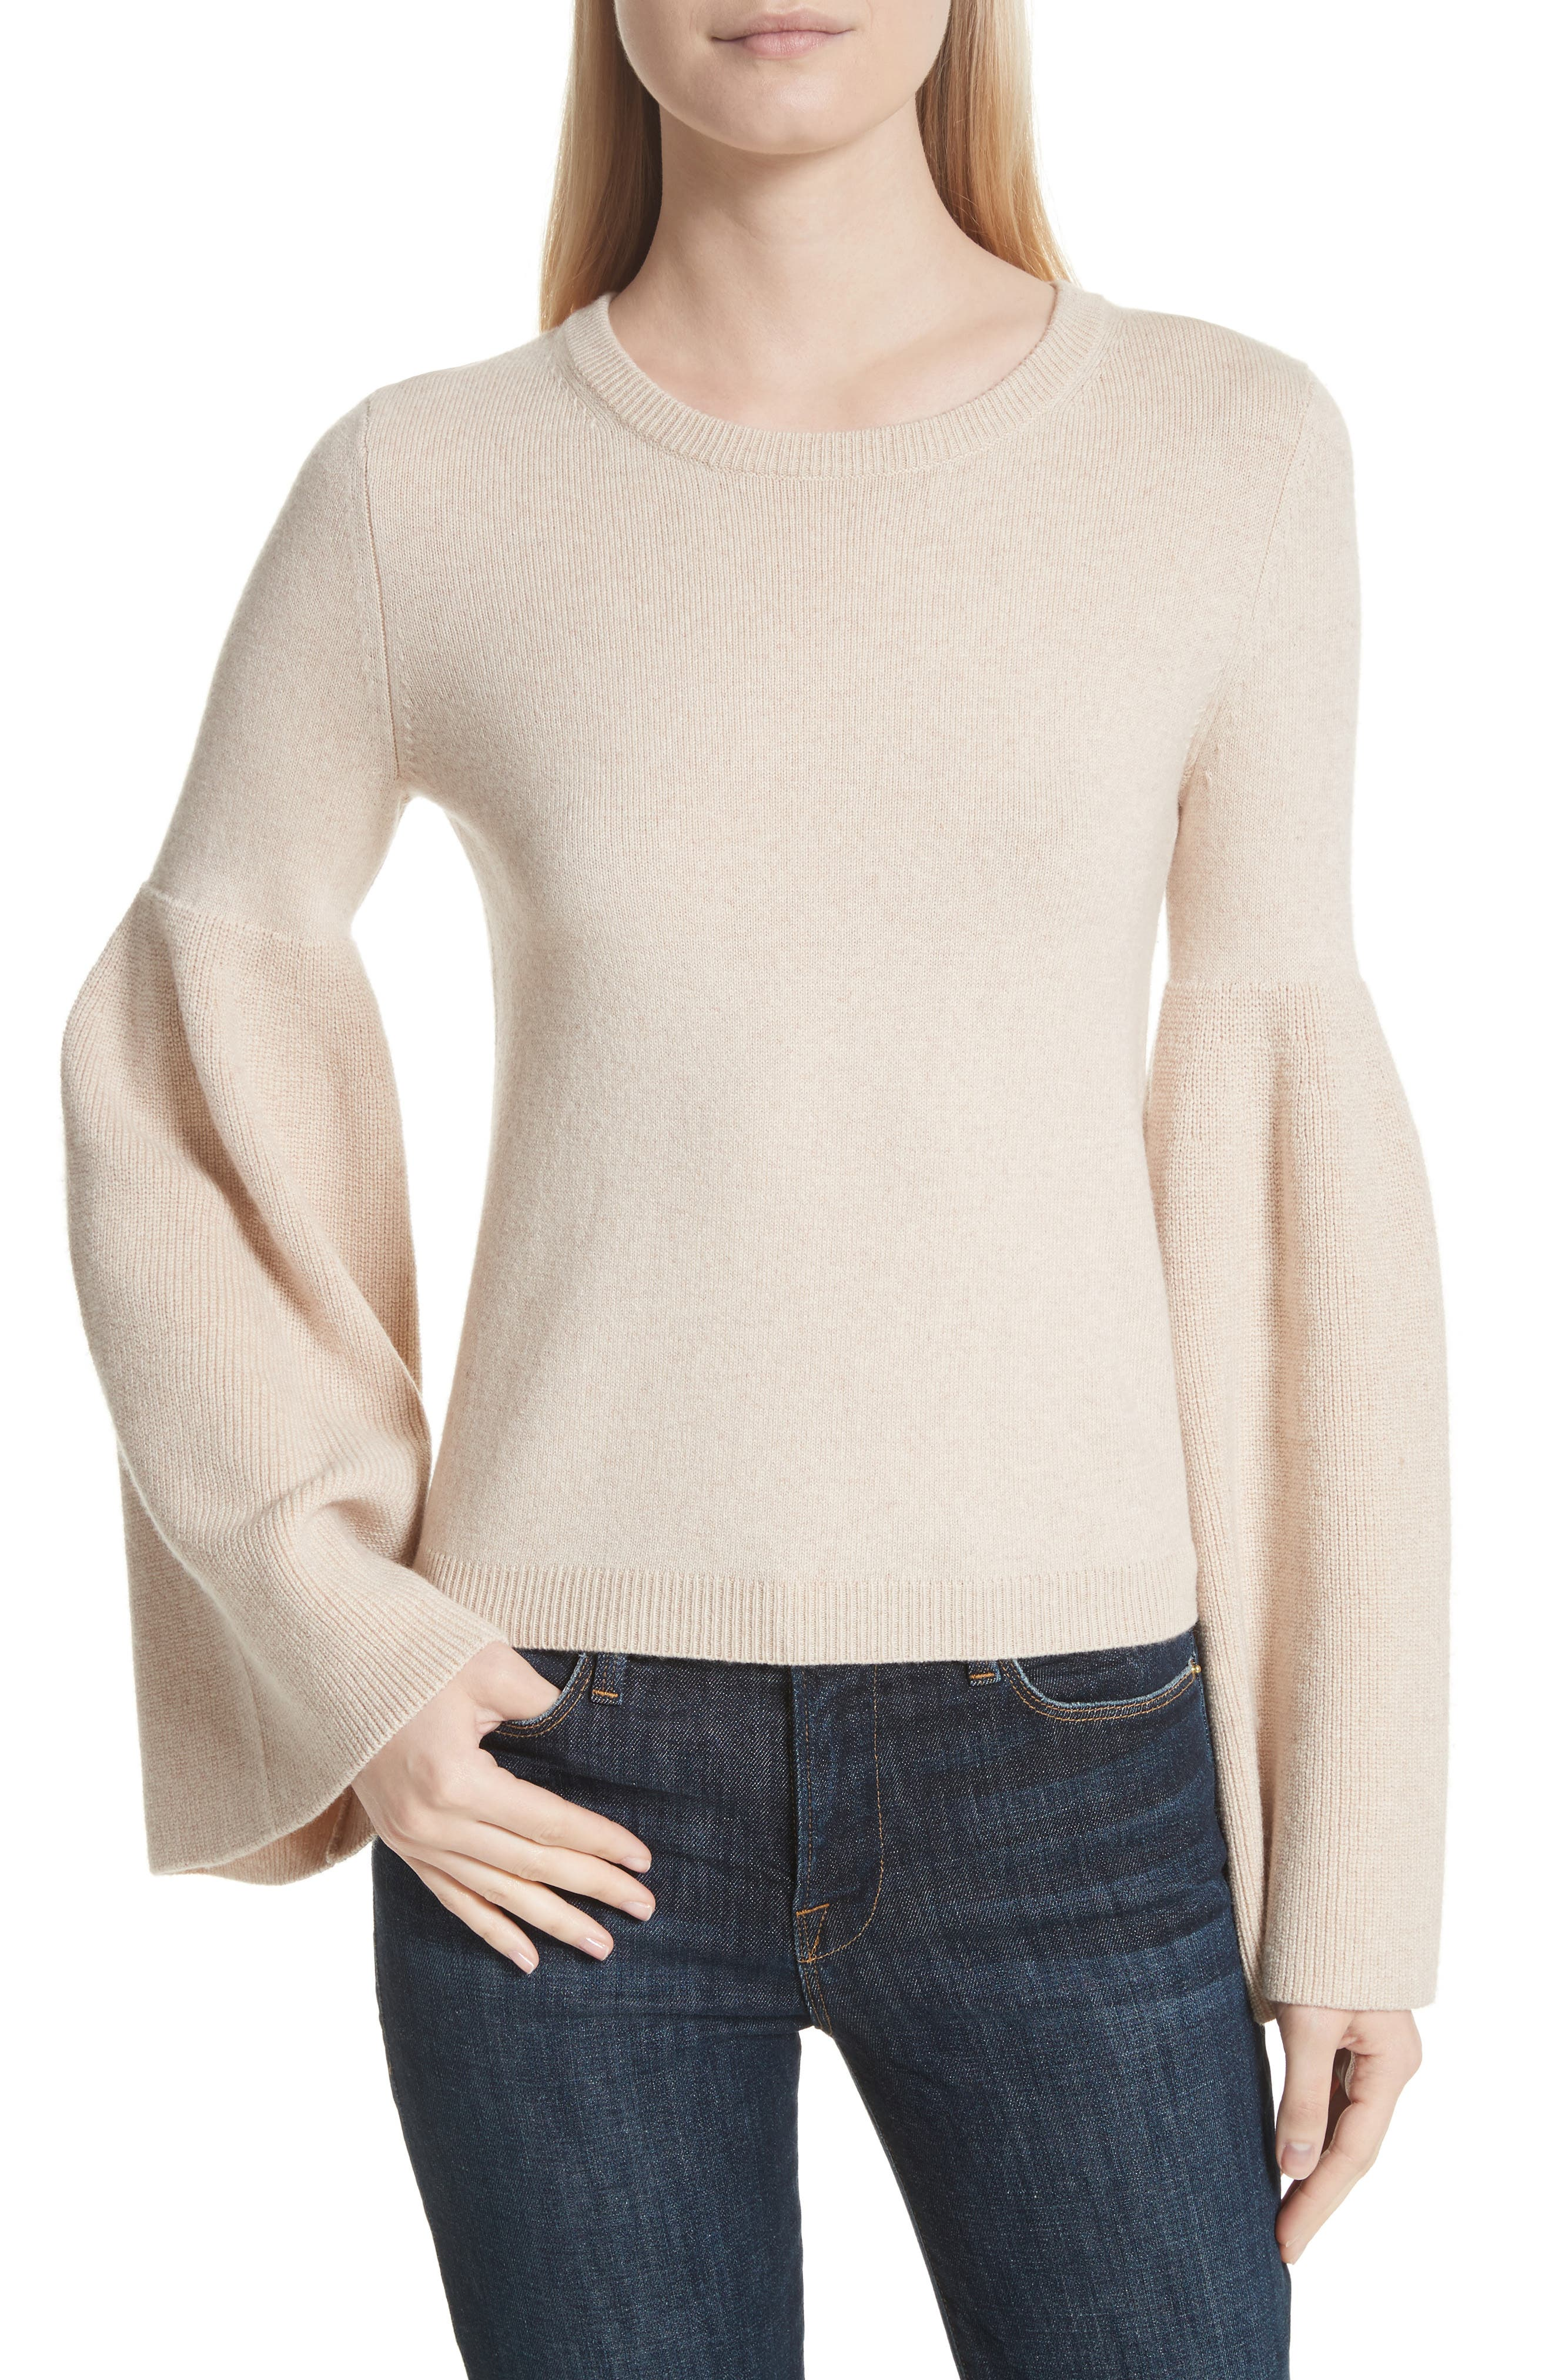 Parson Bell Sleeve Sweater,                         Main,                         color, Nude